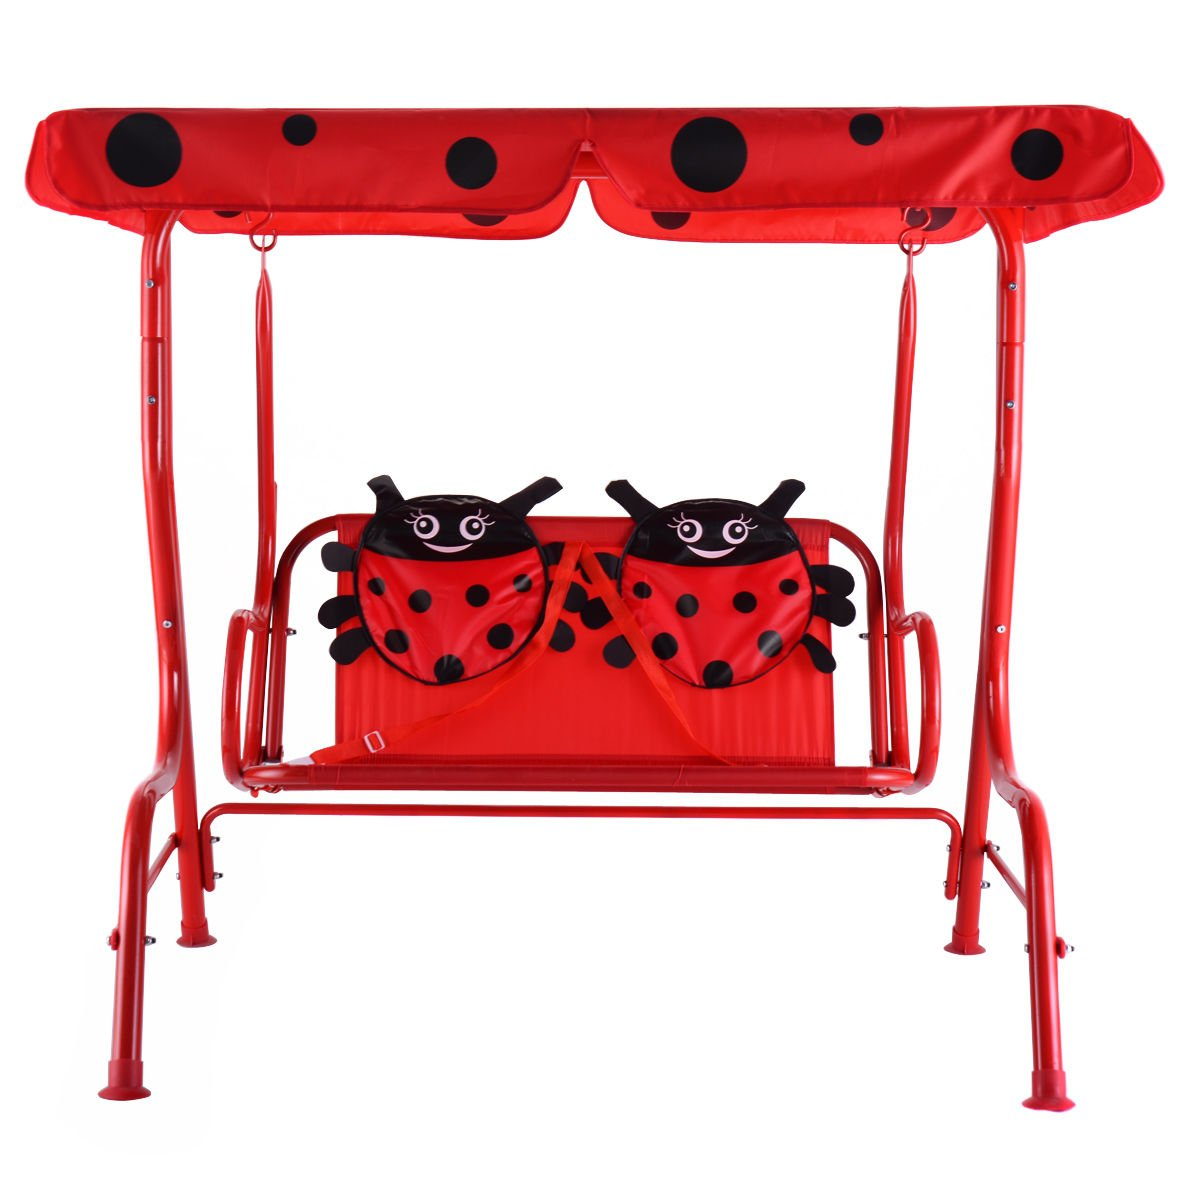 Kids Patio Swing Chair Children Porch Bench Canopy 2 Person (Red)